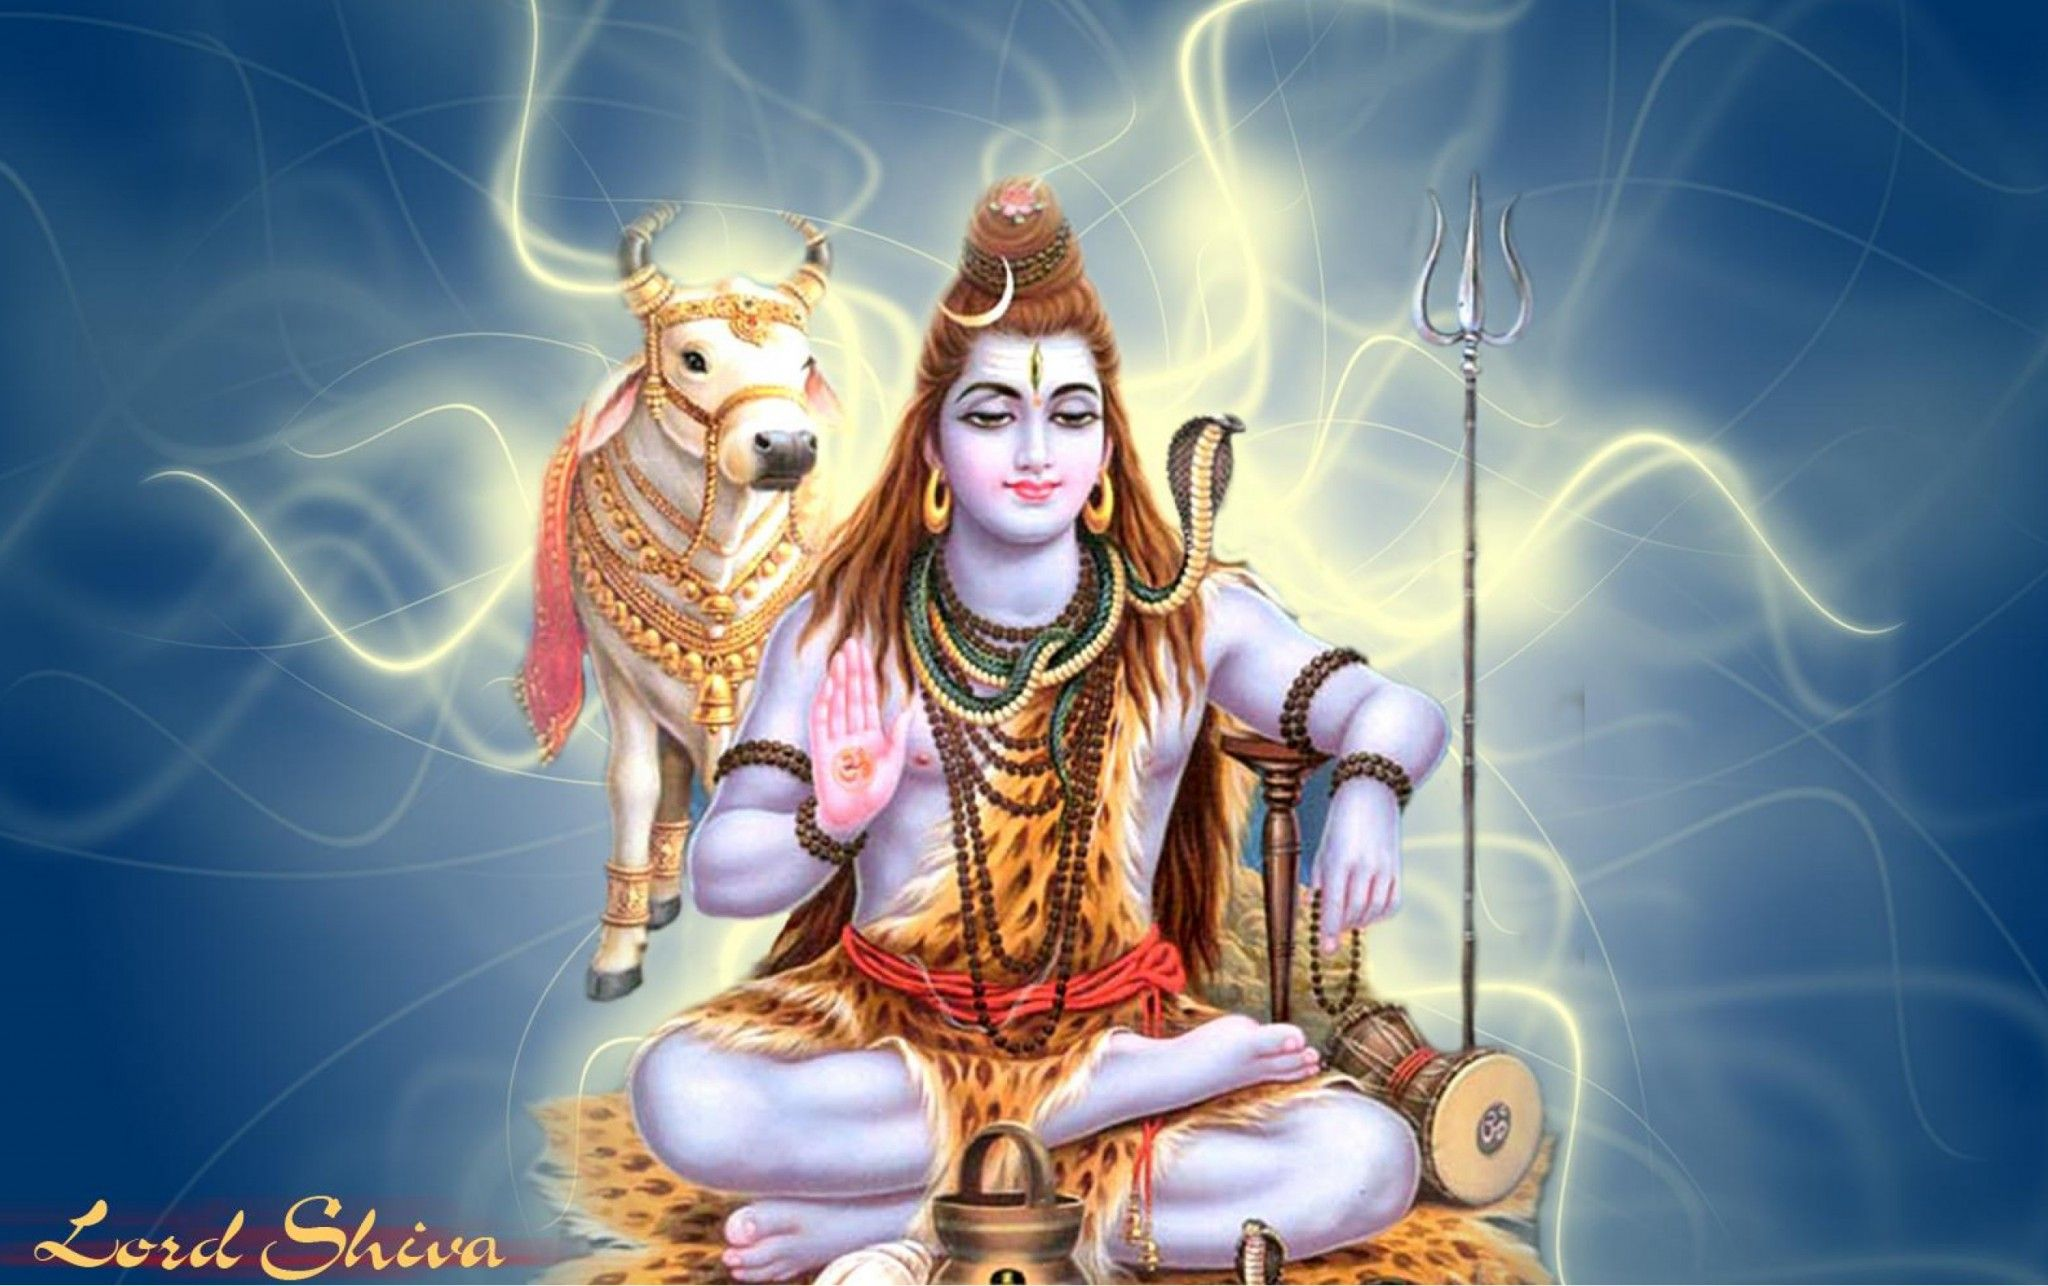 Bhagwan Shiv Shankar Wallpapers Hd Images Photos Free Download